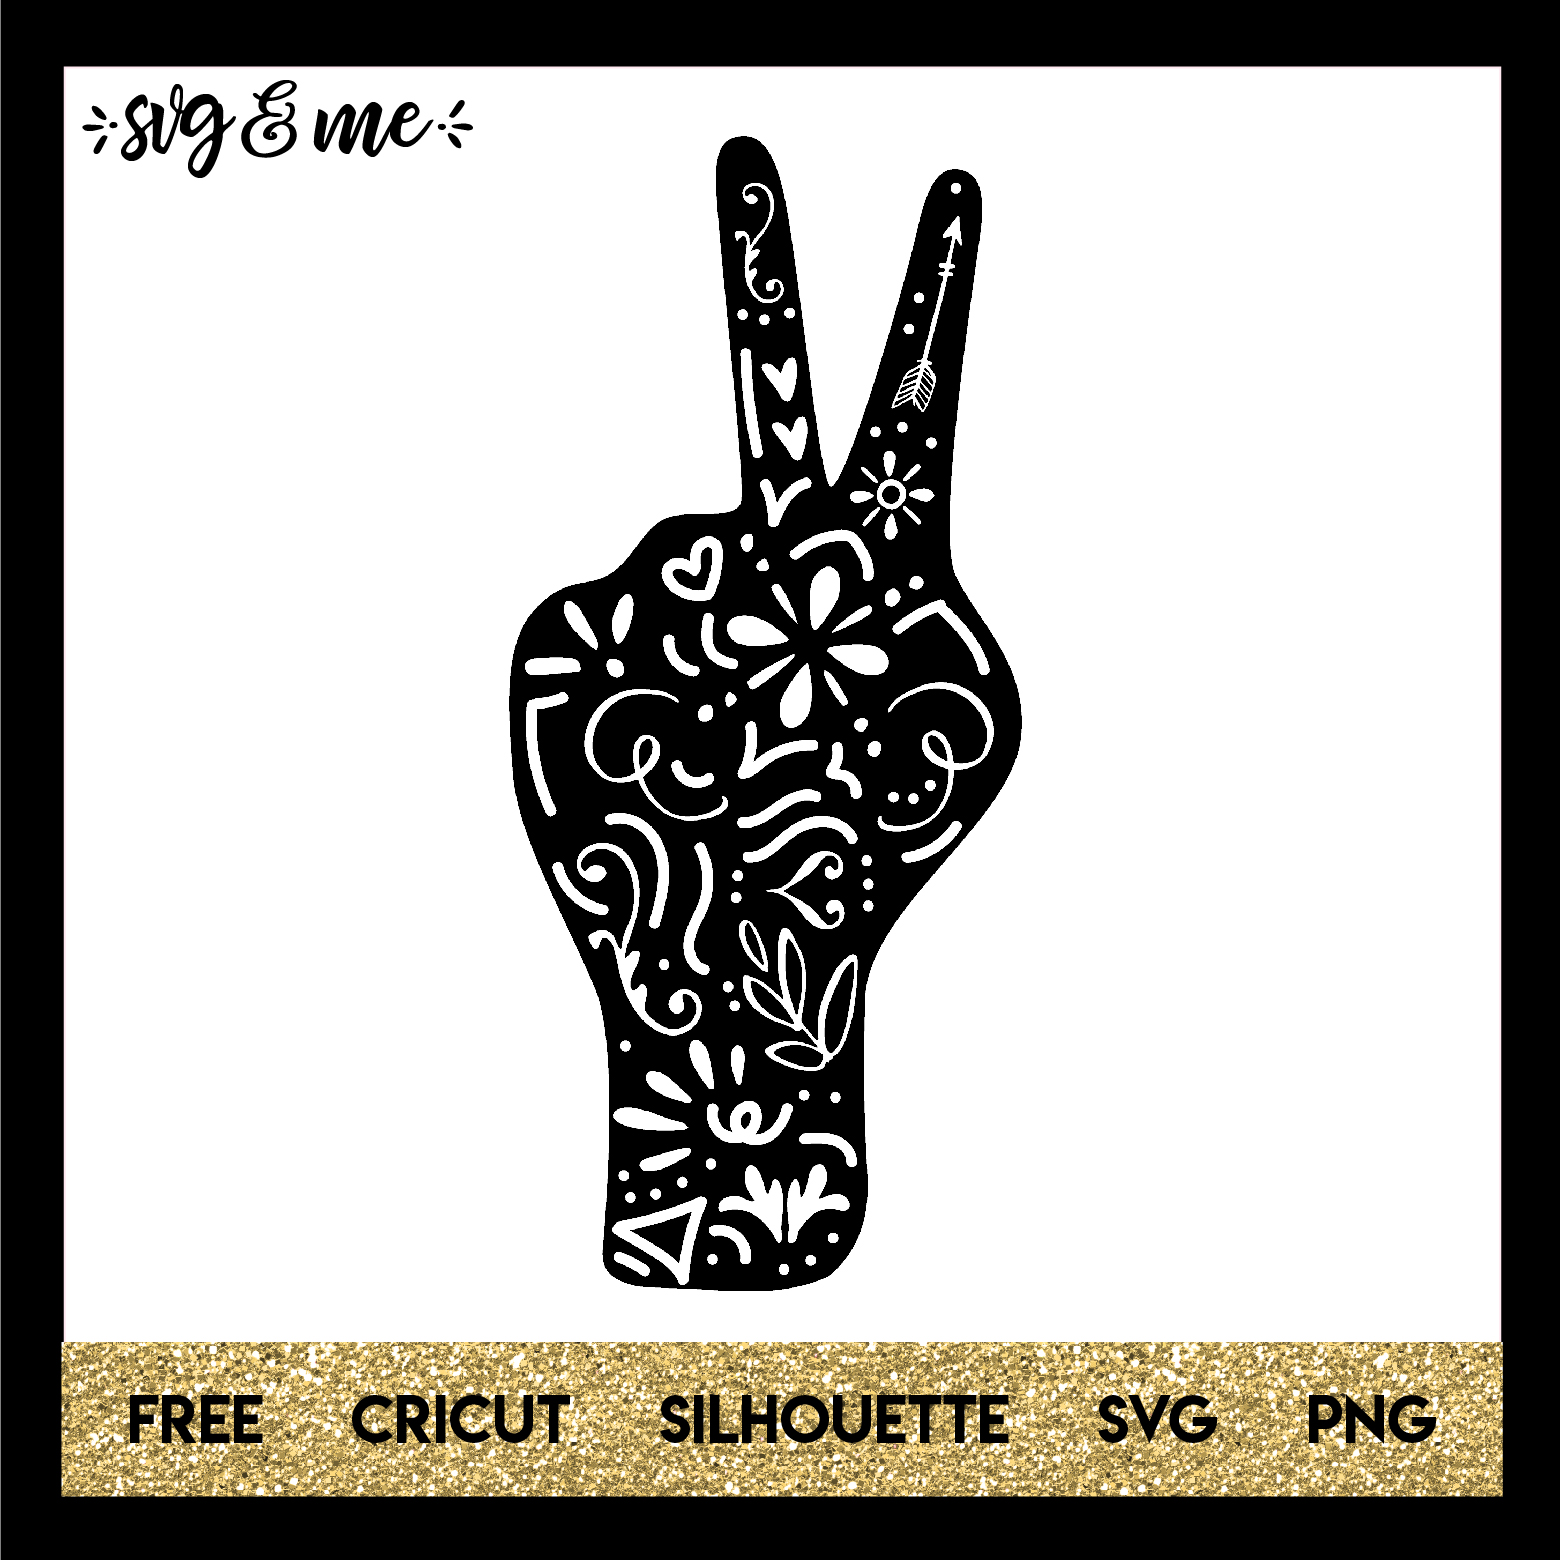 FREE SVG CUT FILE for Cricut and Silhouette DIY Projects - Inspirational Peace Hand Doodle SVG